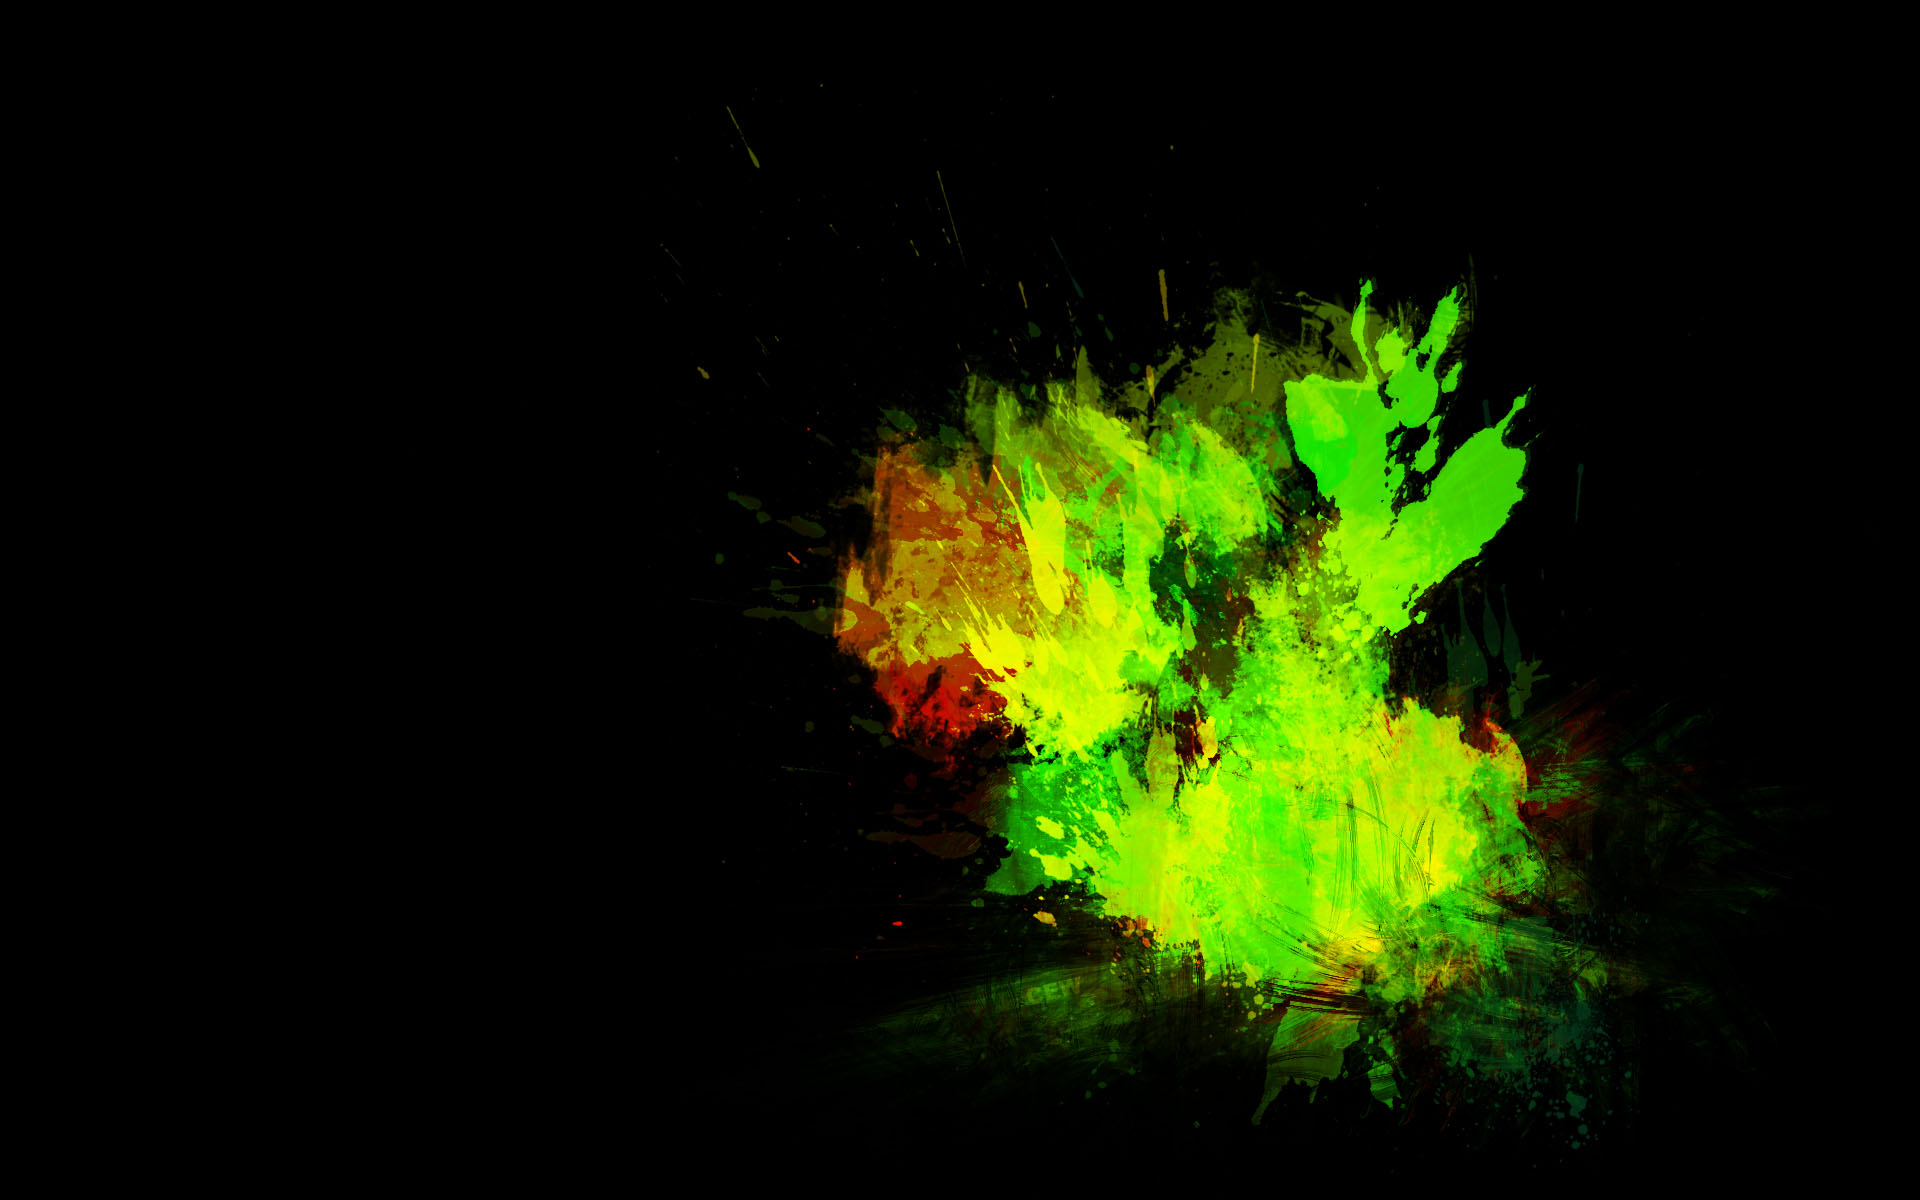 Pictures of Neon Green Splatter Background - #rock-cafe